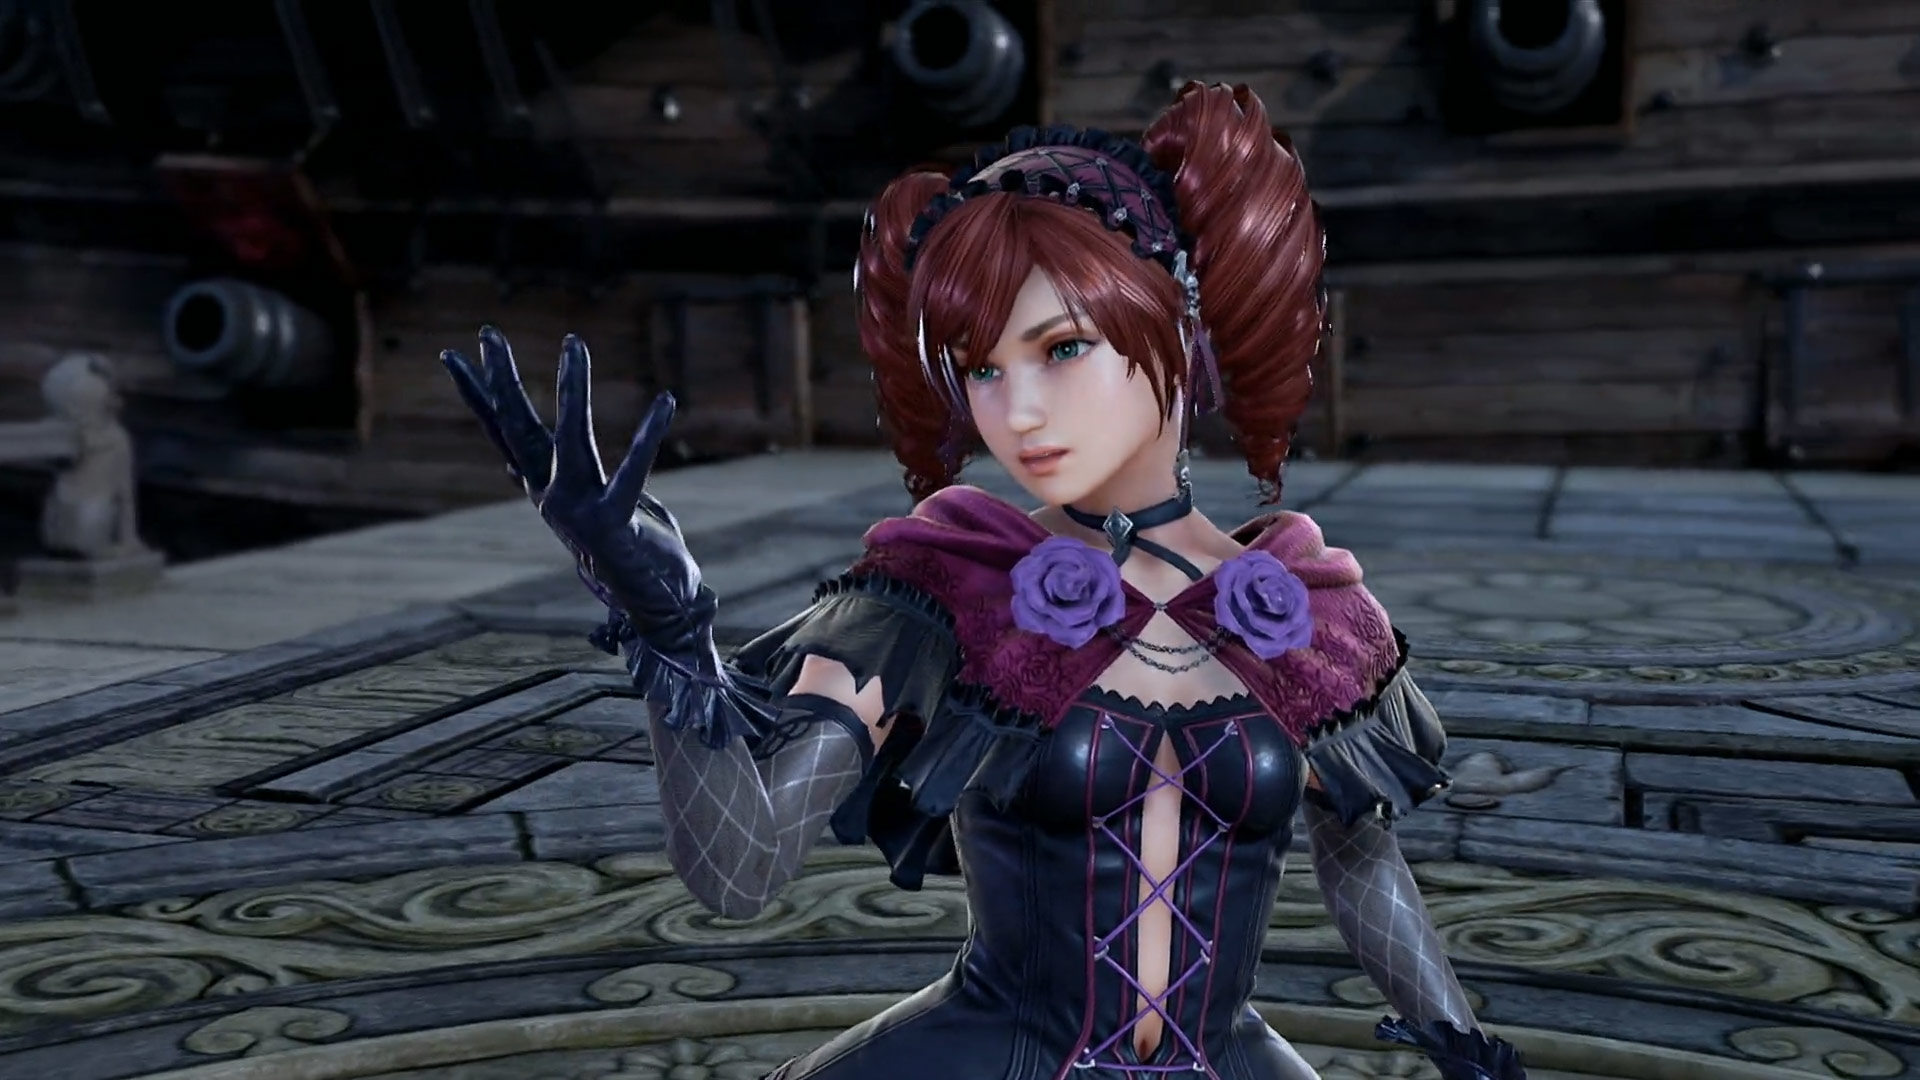 Soul Calibur 6 Amy Reveal 7 out of 9 image gallery